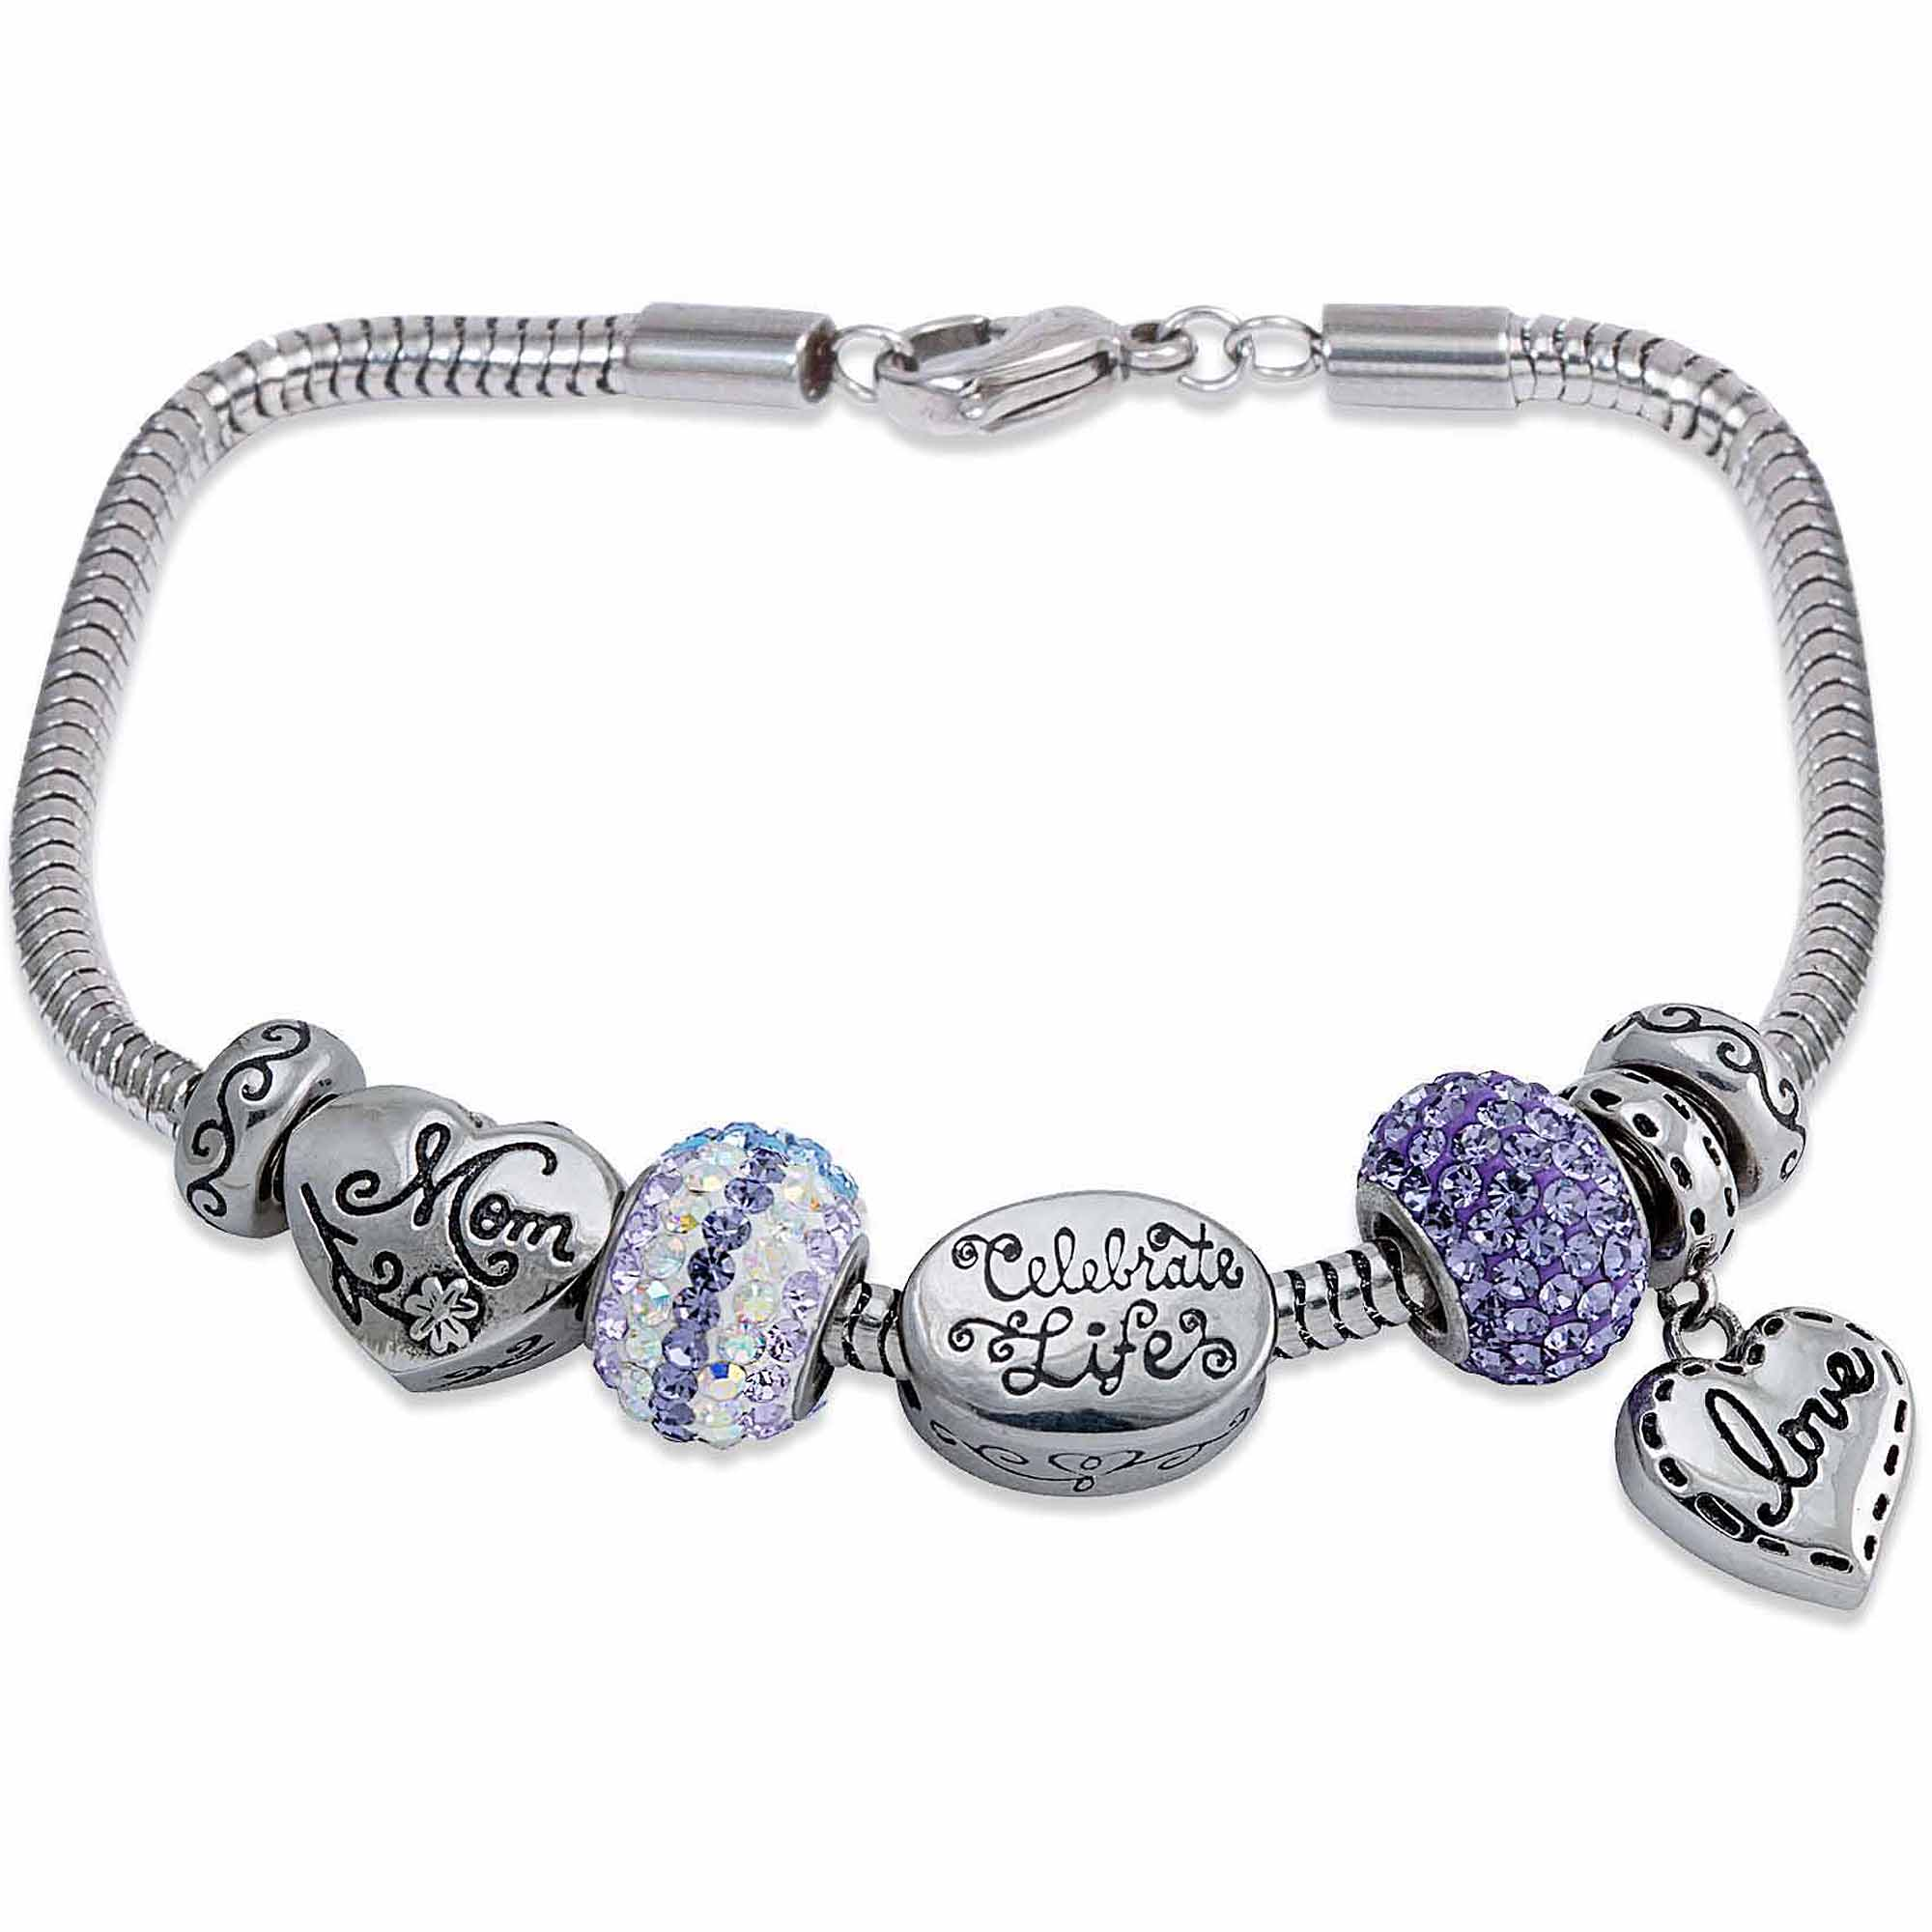 Connections from Hallmark Stainless Steel Limited Edition Mom Charm Bracelet Set